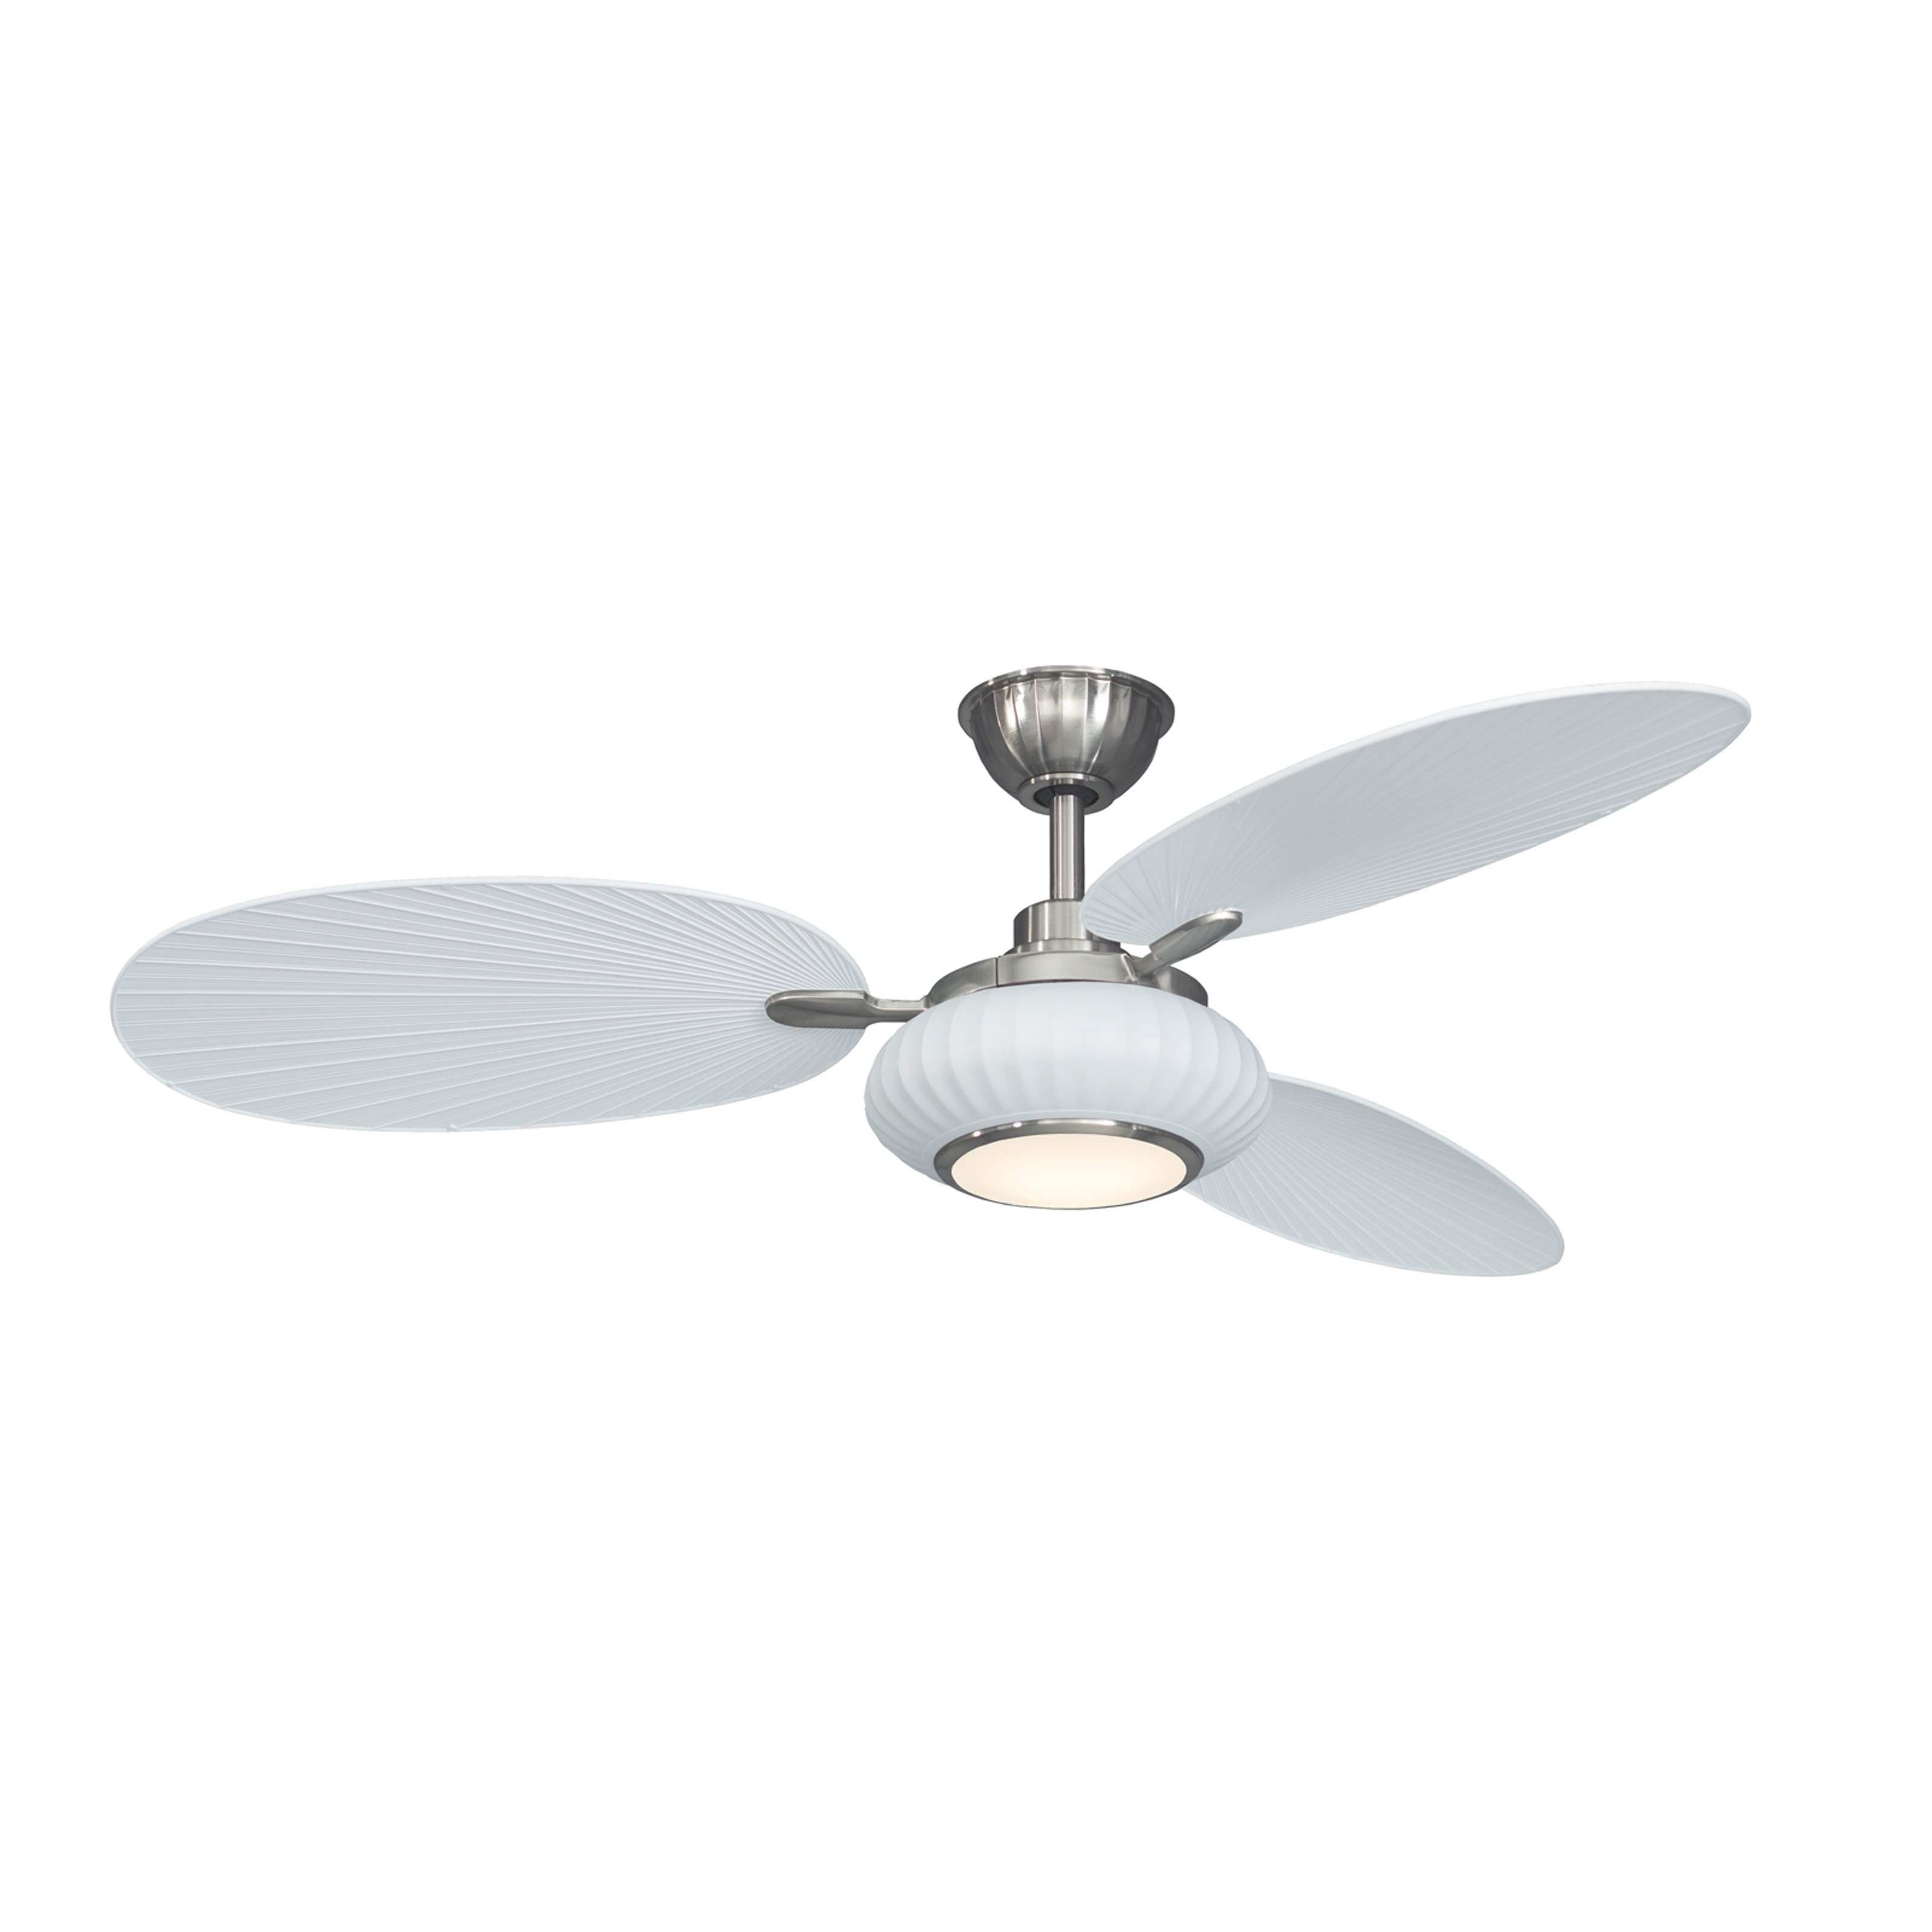 Well Known 24 Inch Ceiling Fan With Light Awesome Kichler Renew Patio 52 In Regarding 24 Inch Outdoor Ceiling Fans With Light (View 19 of 20)